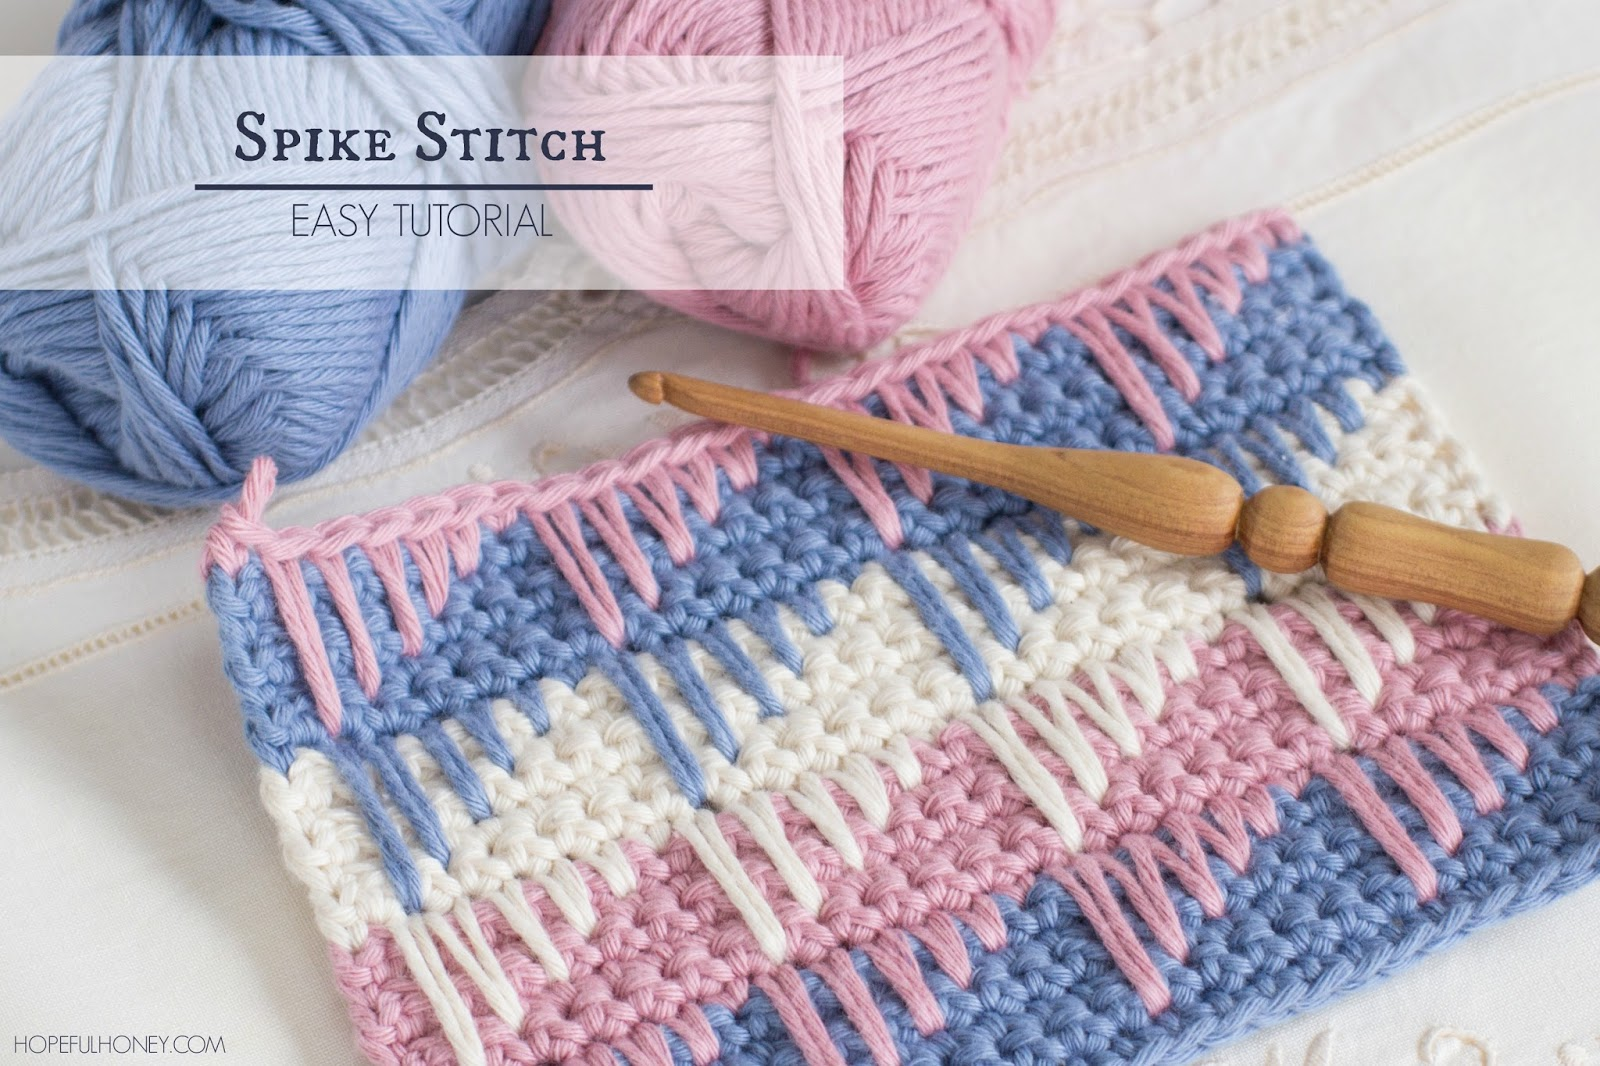 ... , Crochet, Create: How To: Crochet The Spike Stitch - Easy Tutorial